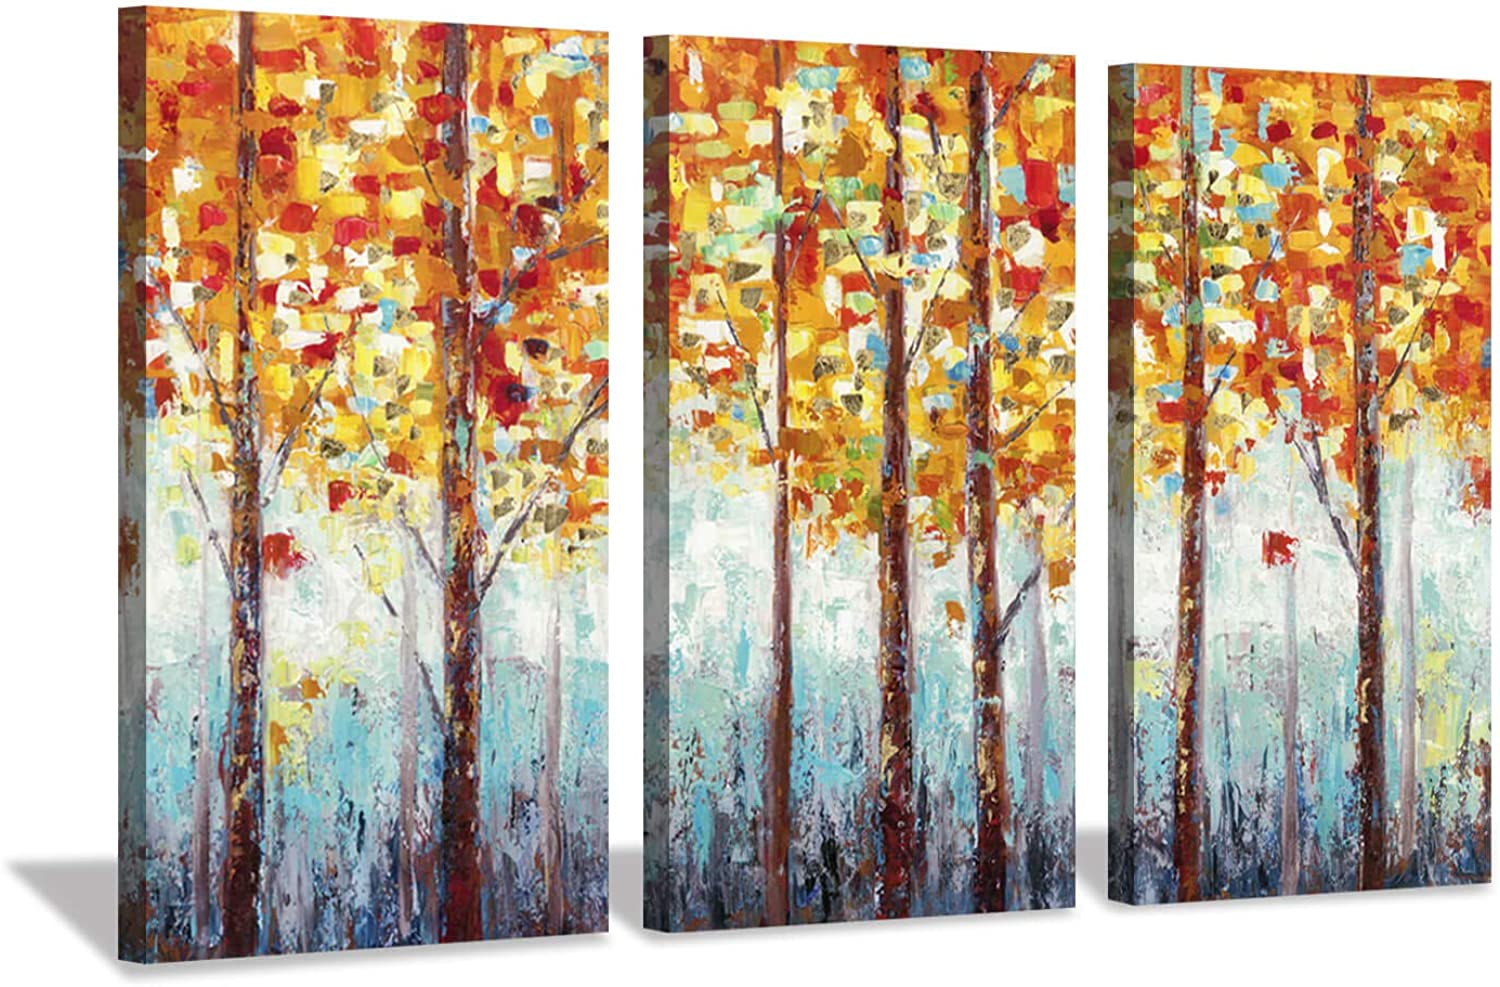 Hardy Gallery Abstract Landscape Arts Woods Pictures  Fall Trees Artwork on Canvas for Homes